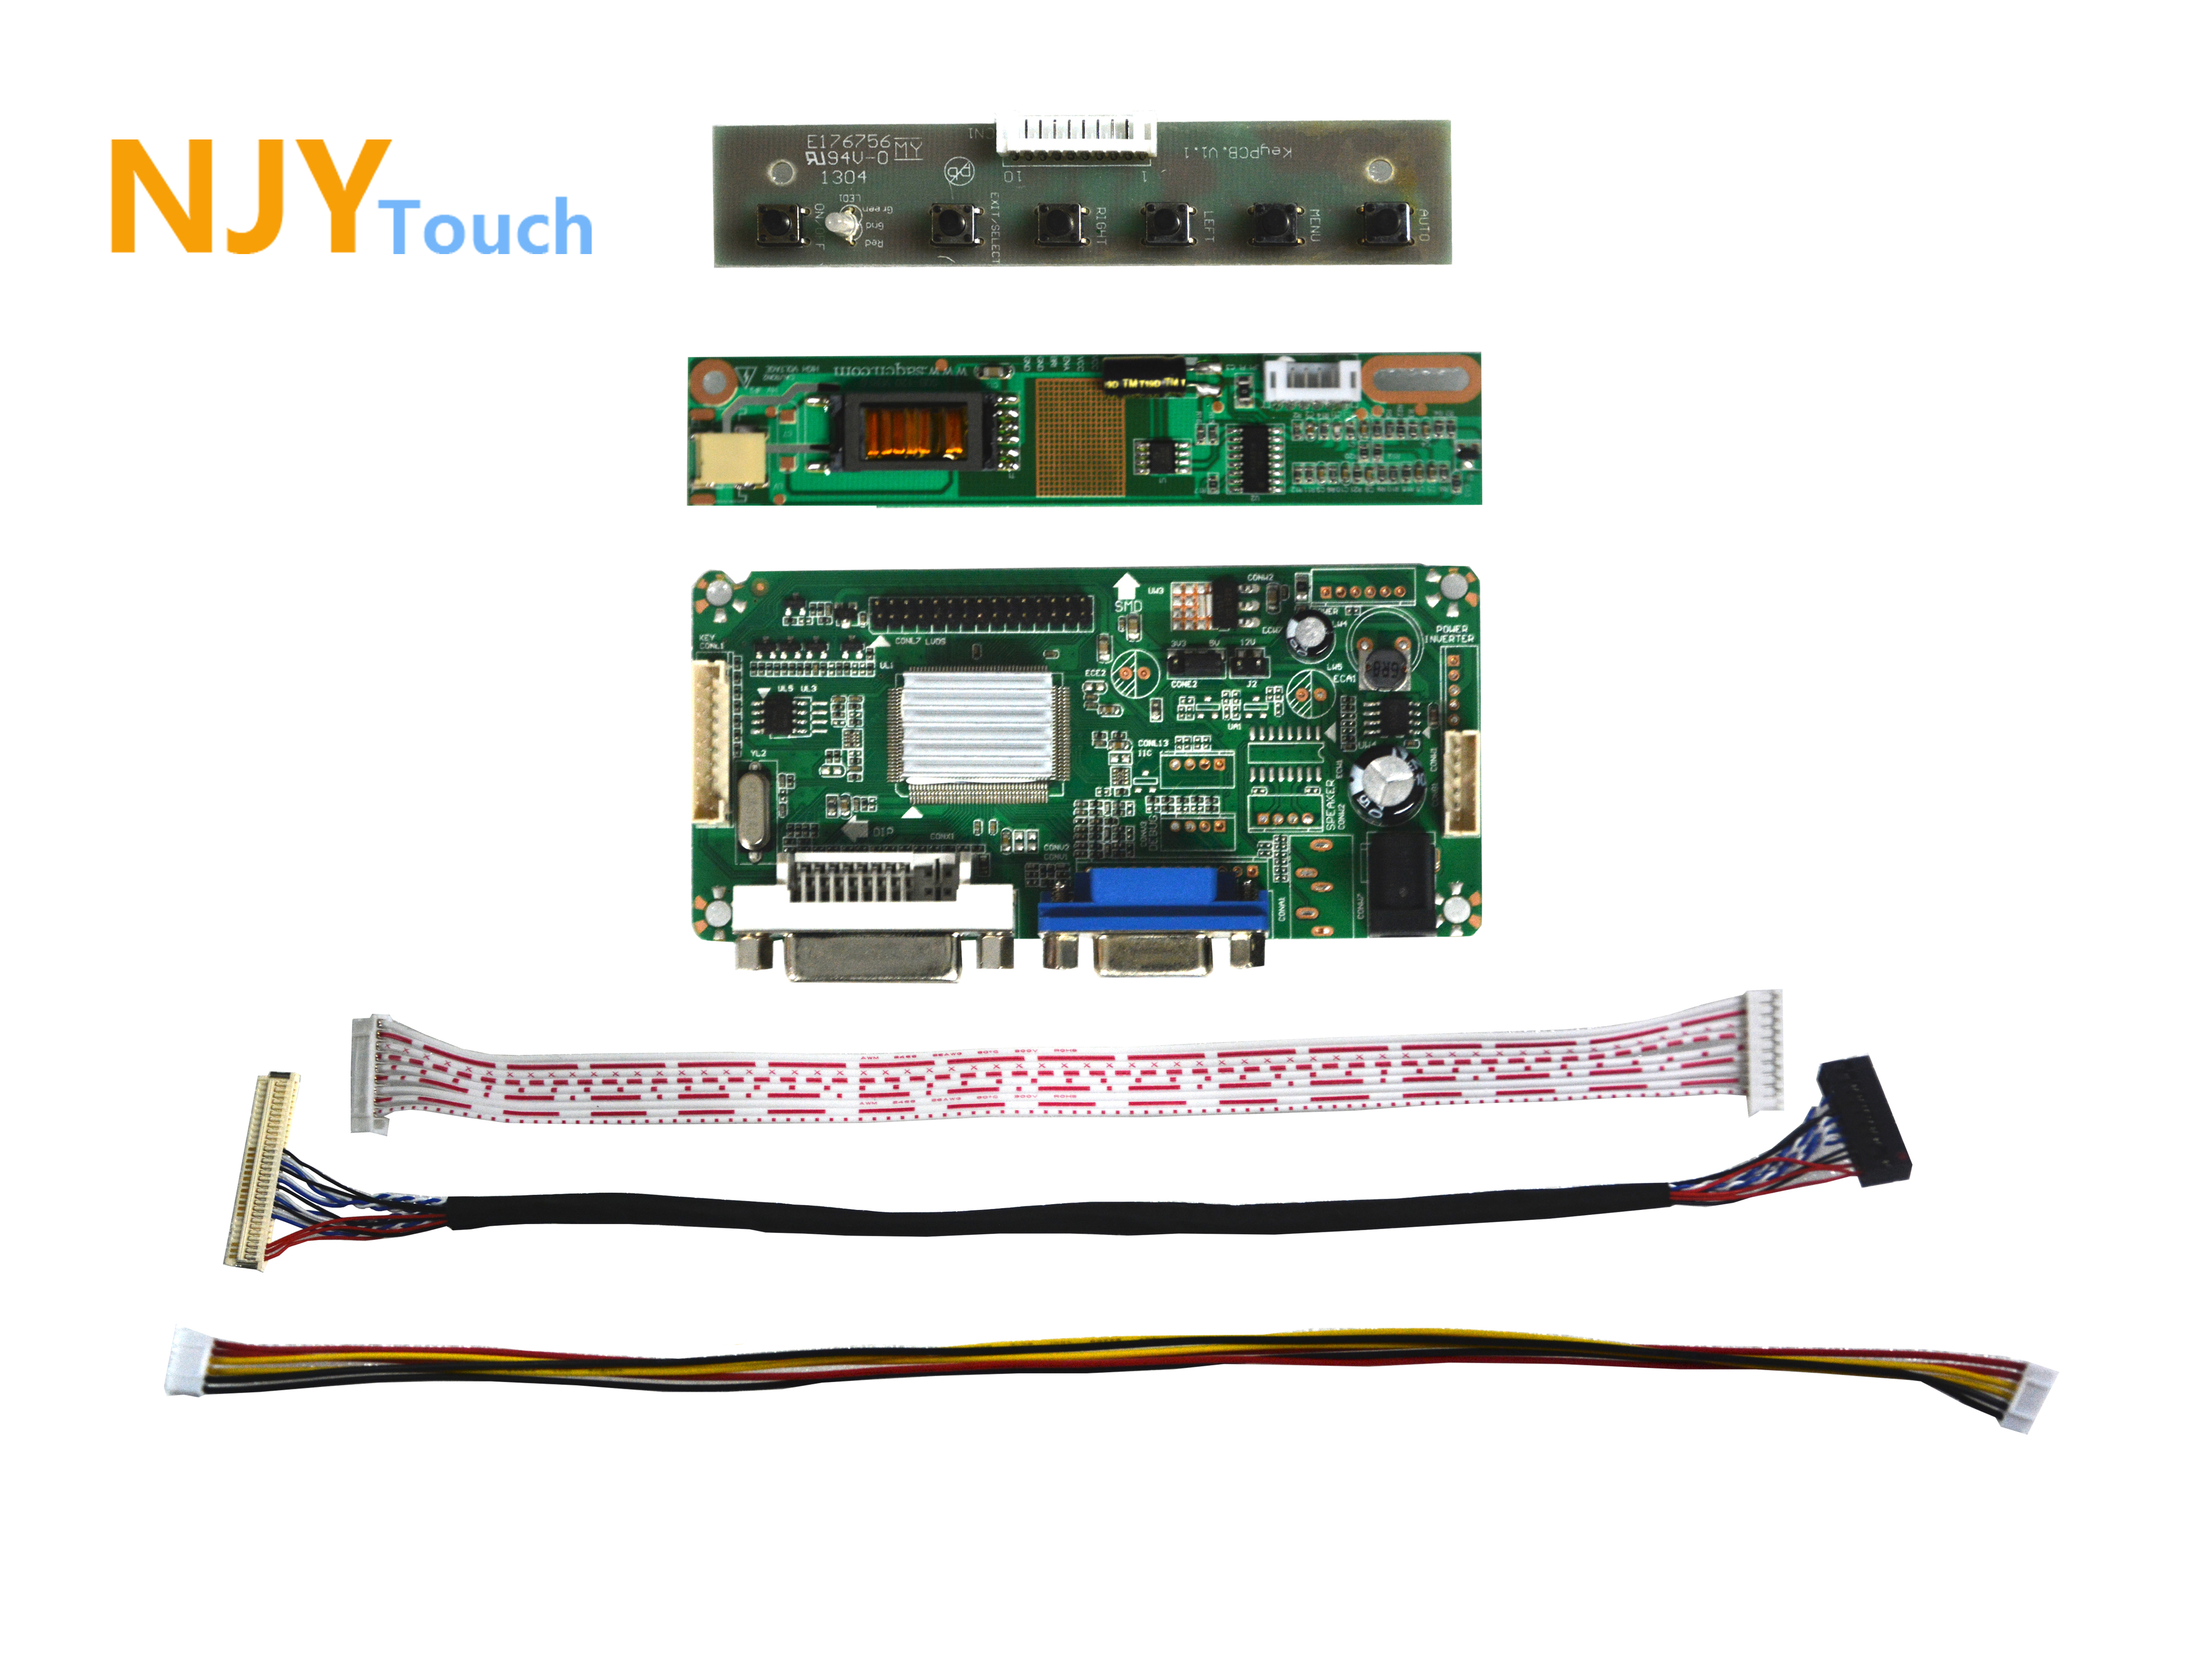 NJYTouch LM.R61 DVI VGA LCD Controller Driver Board For 15.4inch N154I3-L03 N154I3-L04 1280x800 LED Screen